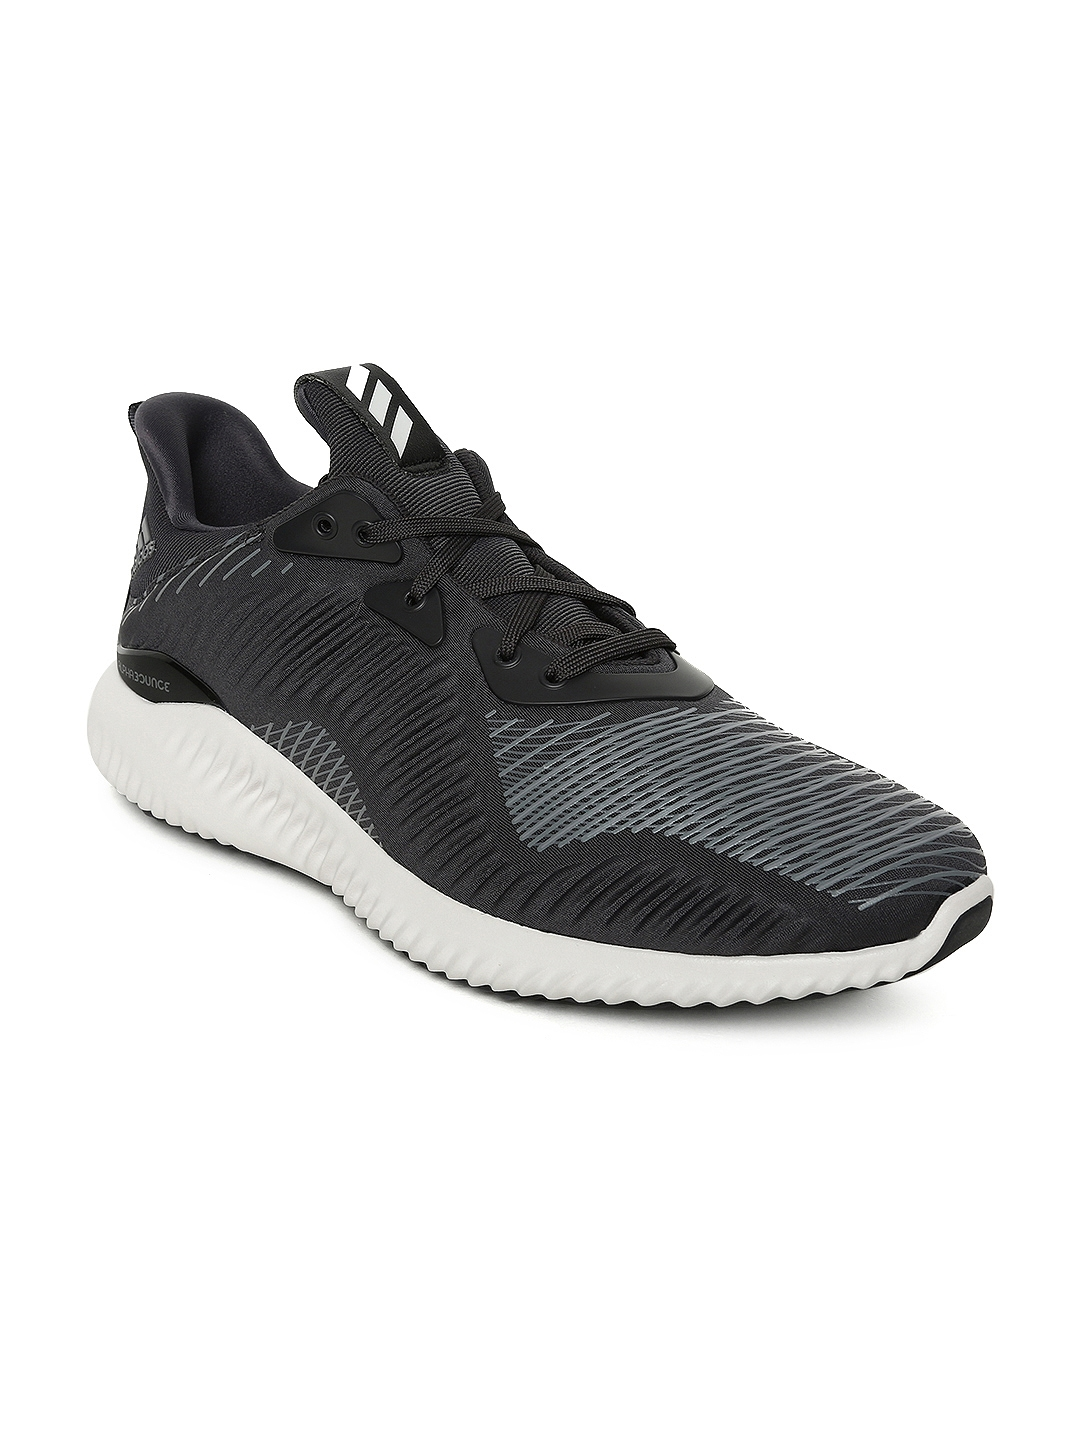 8bae29bd4 Buy ADIDAS Men Black ALPHABOUNCE Haptic Print Running Shoes - Sports ...